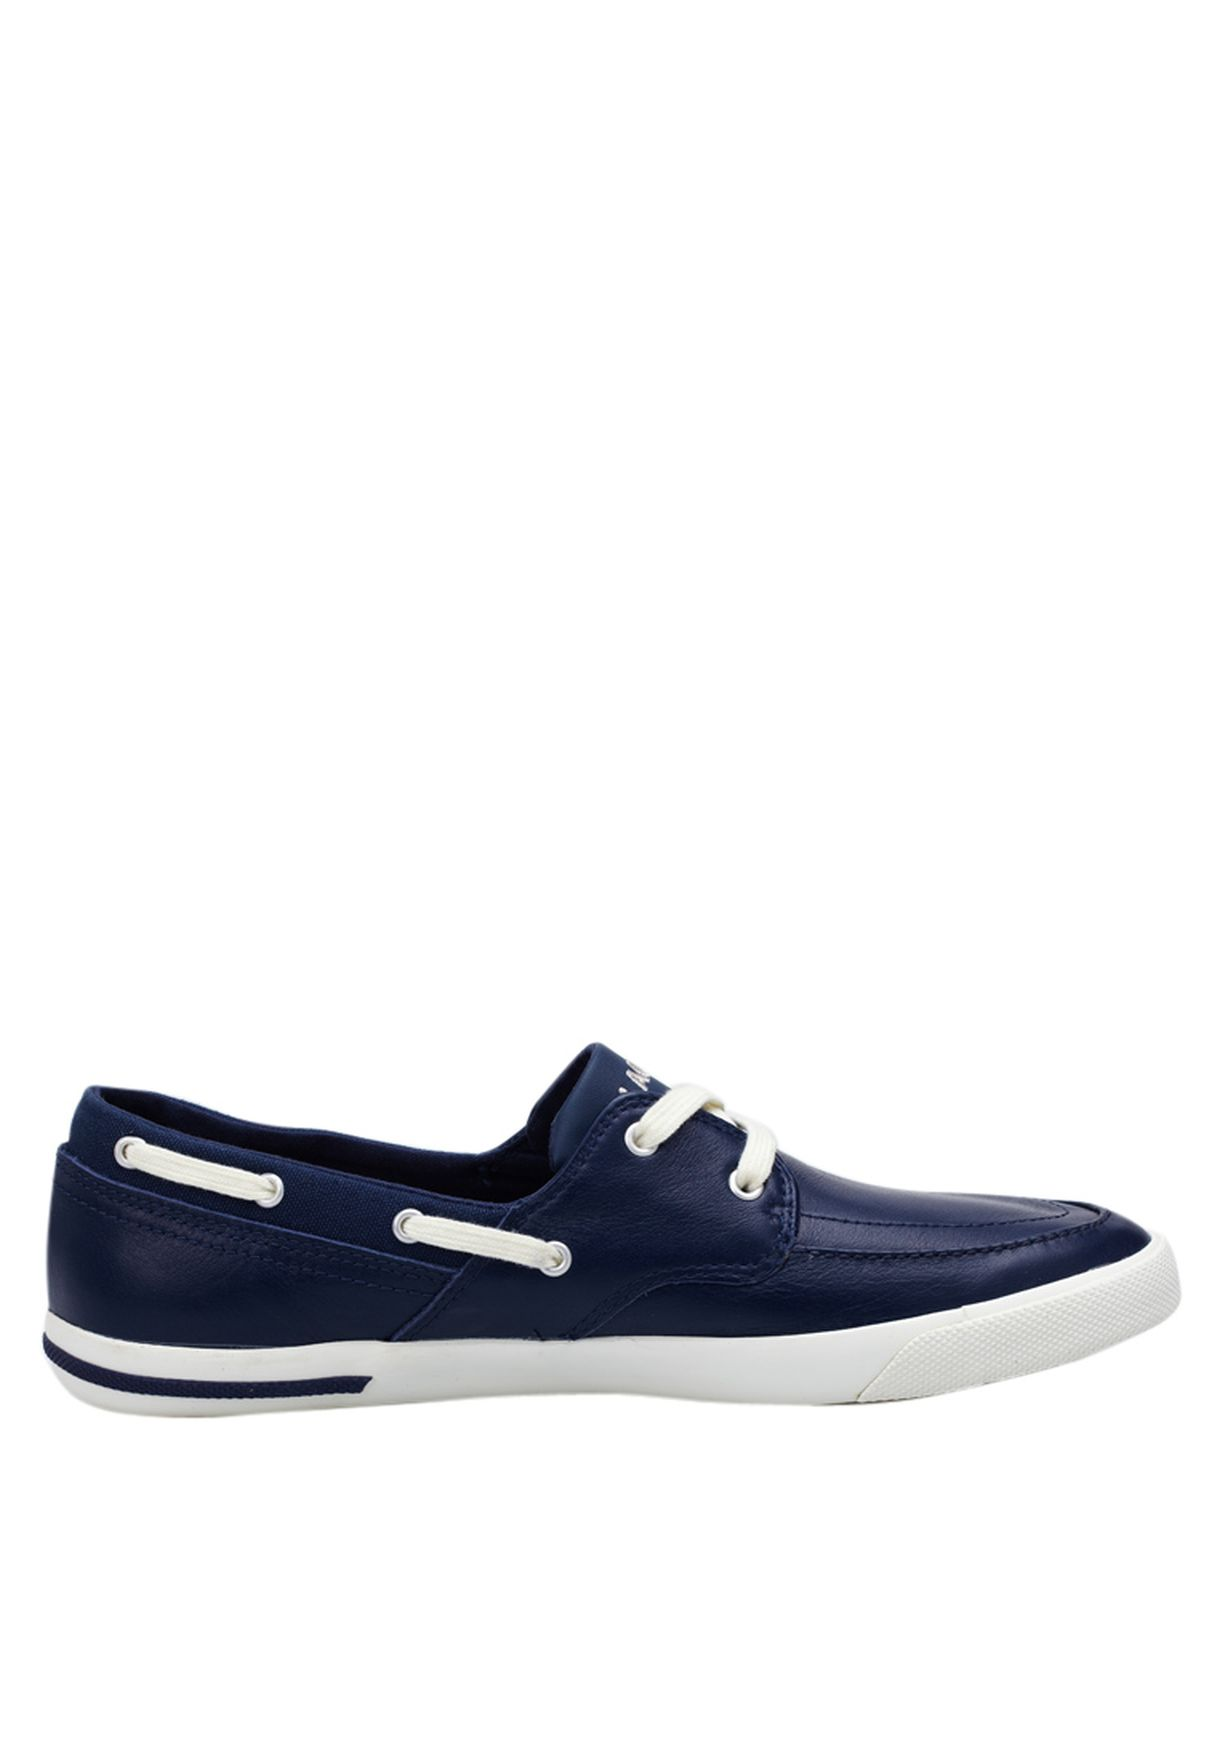 06fdd7c2ef0a Shop Lacoste blue Newton Boat Boat Shoes 24SPM1238-1W6 for Men in ...